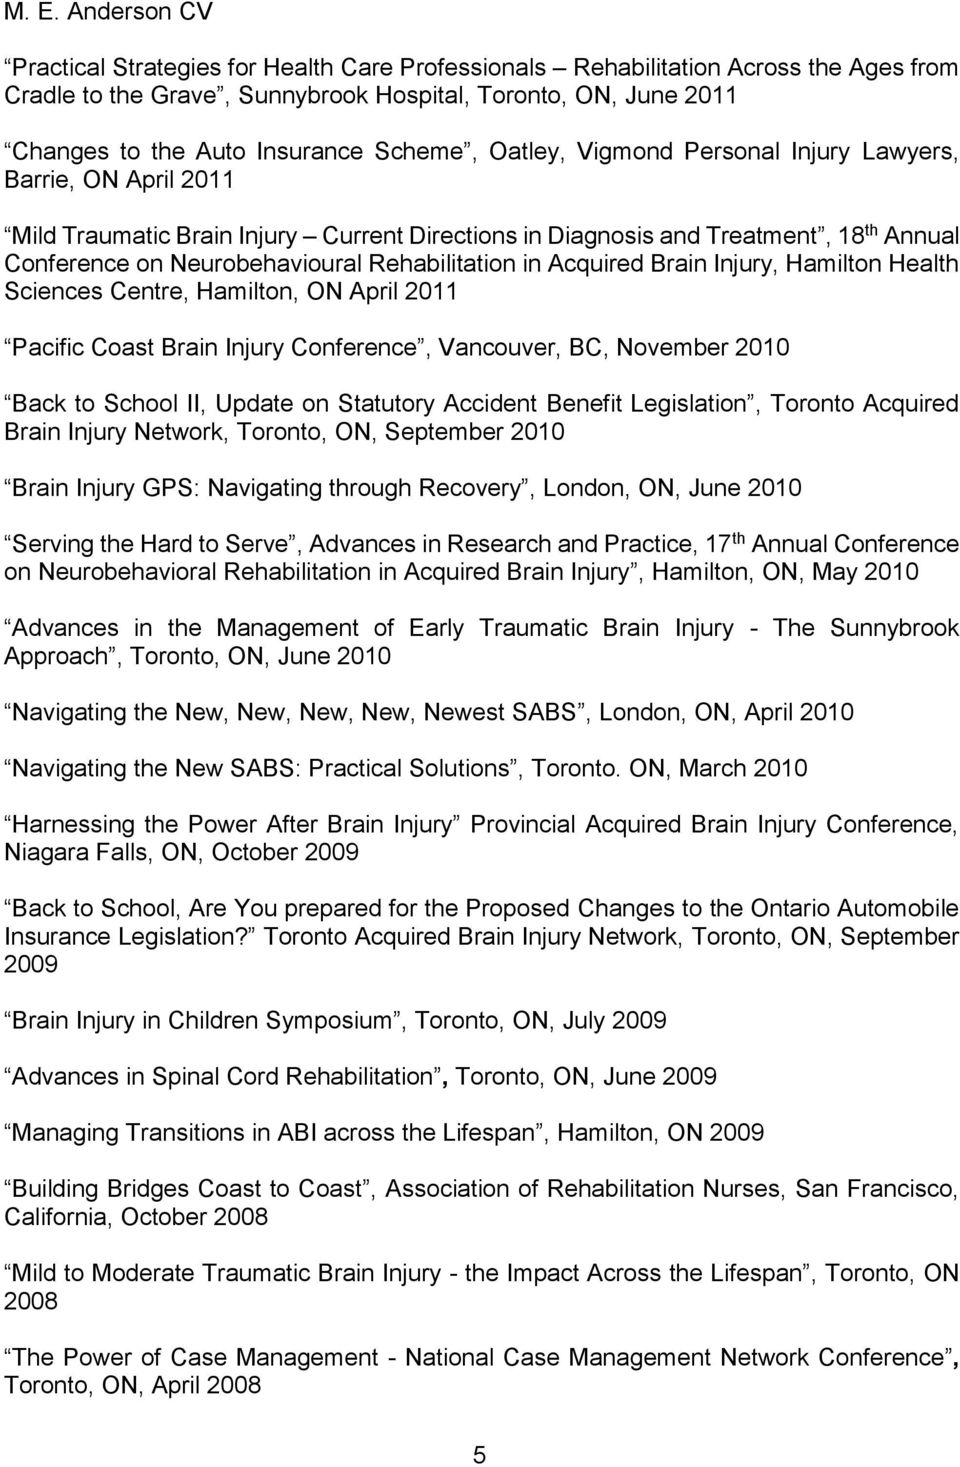 Acquired Brain Injury, Hamilton Health Sciences Centre, Hamilton, ON April 2011 Pacific Coast Brain Injury Conference, Vancouver, BC, November 2010 Back to School II, Update on Statutory Accident